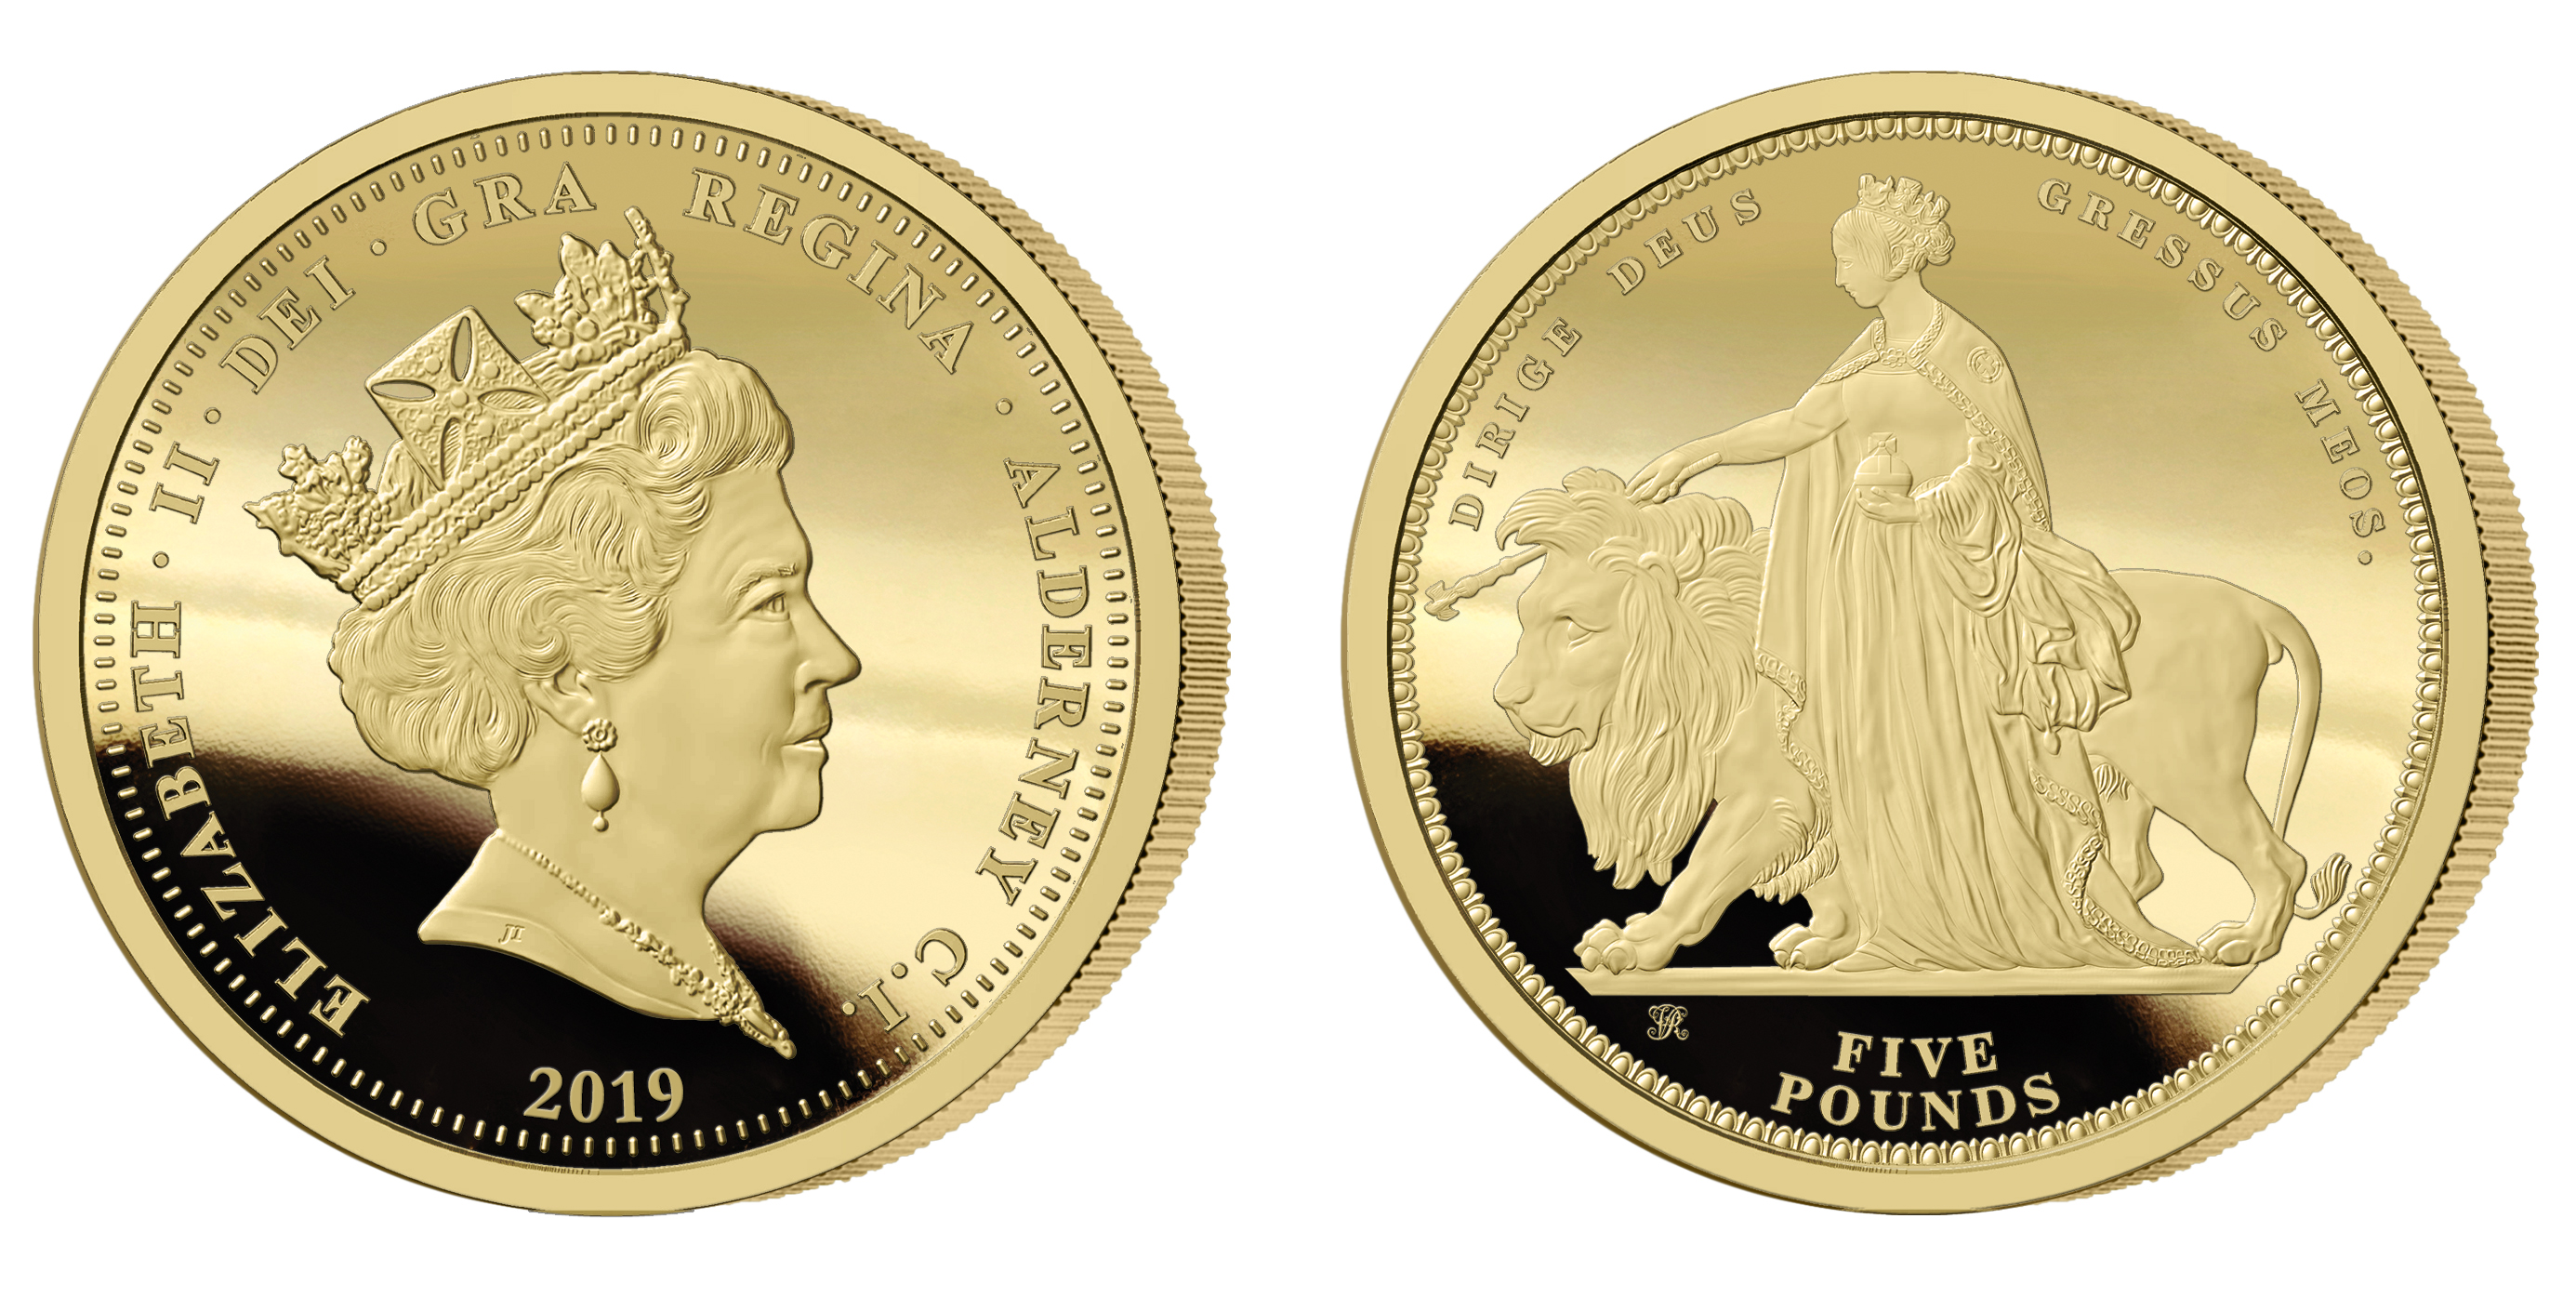 The 2019 Queen Victoria 200th Anniversary 24 Carat Gold Five Pound Sovereign